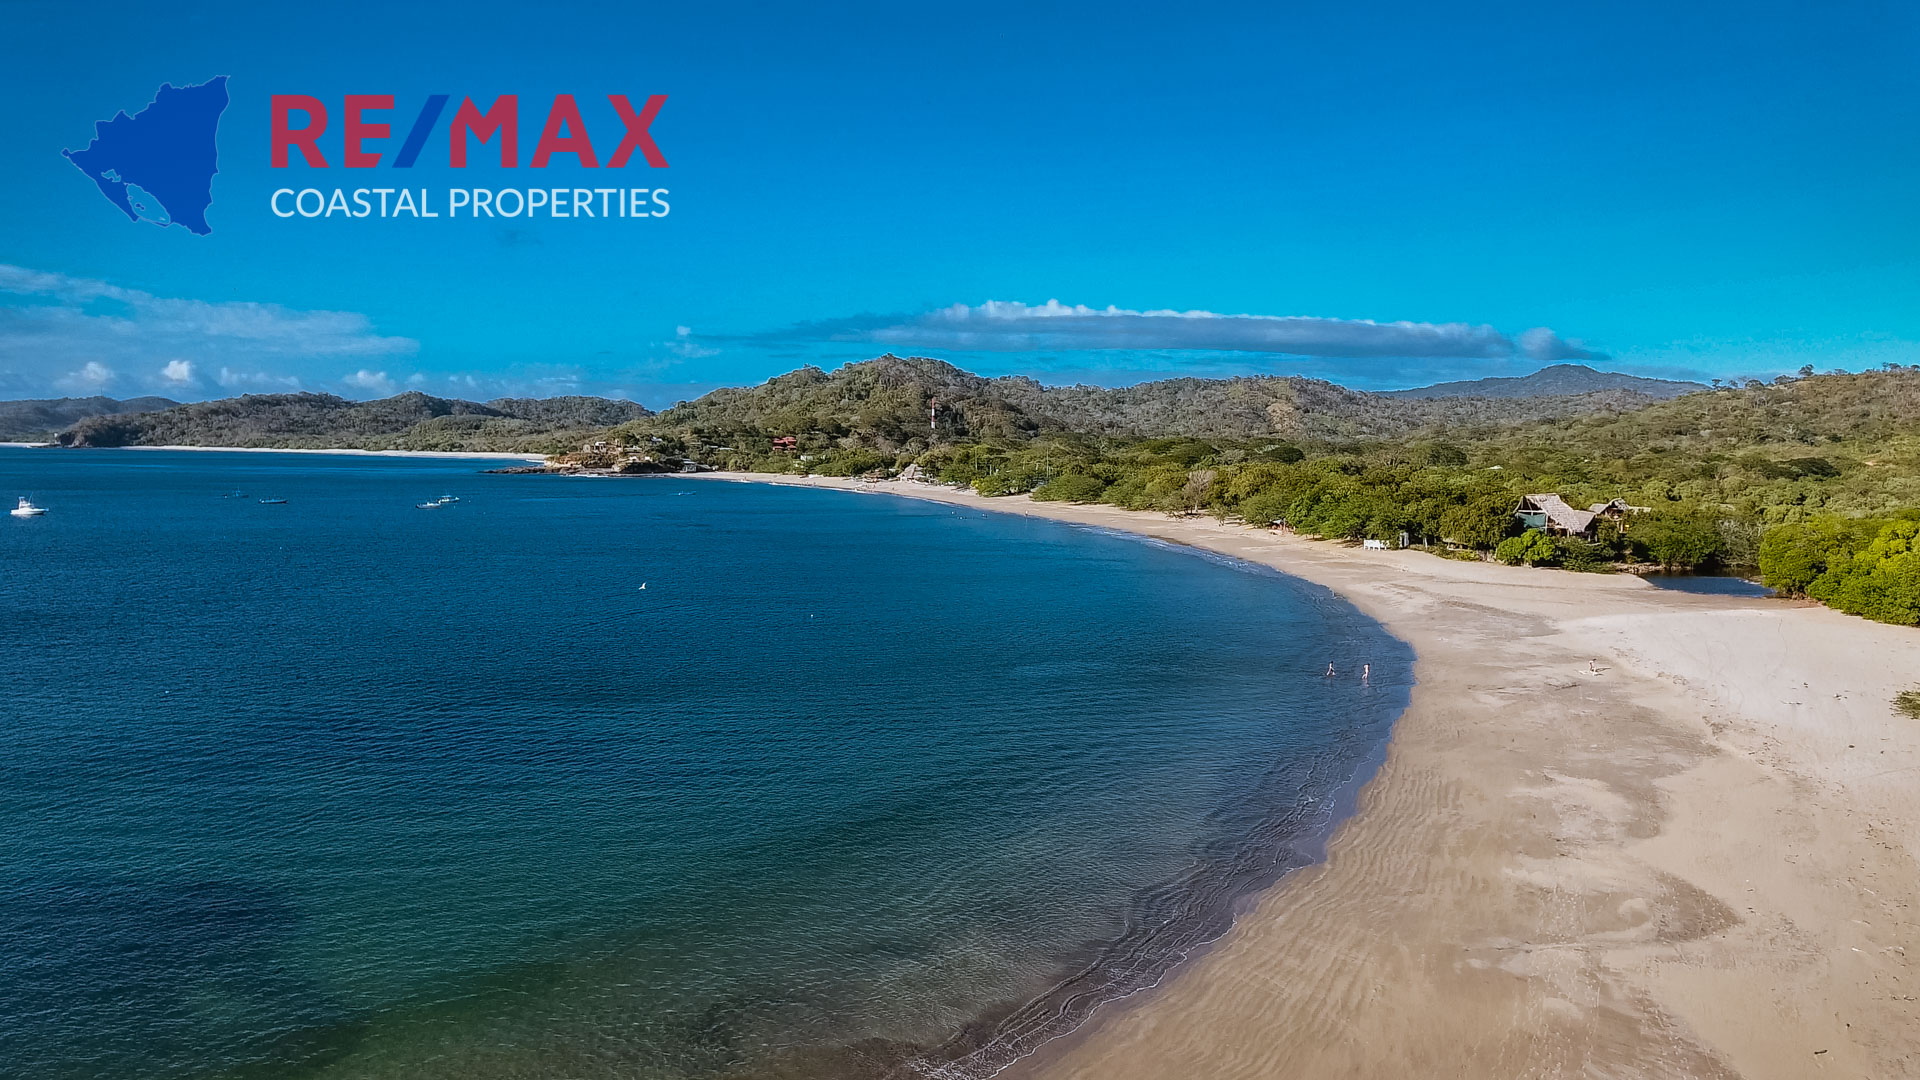 https://property-nicaragua.com/pedrodev/wp-content/uploads/2020/07/Arcadia-Gigante-Redonda-Development-Opportunity-REMAX-Coastal-Properties.jpg